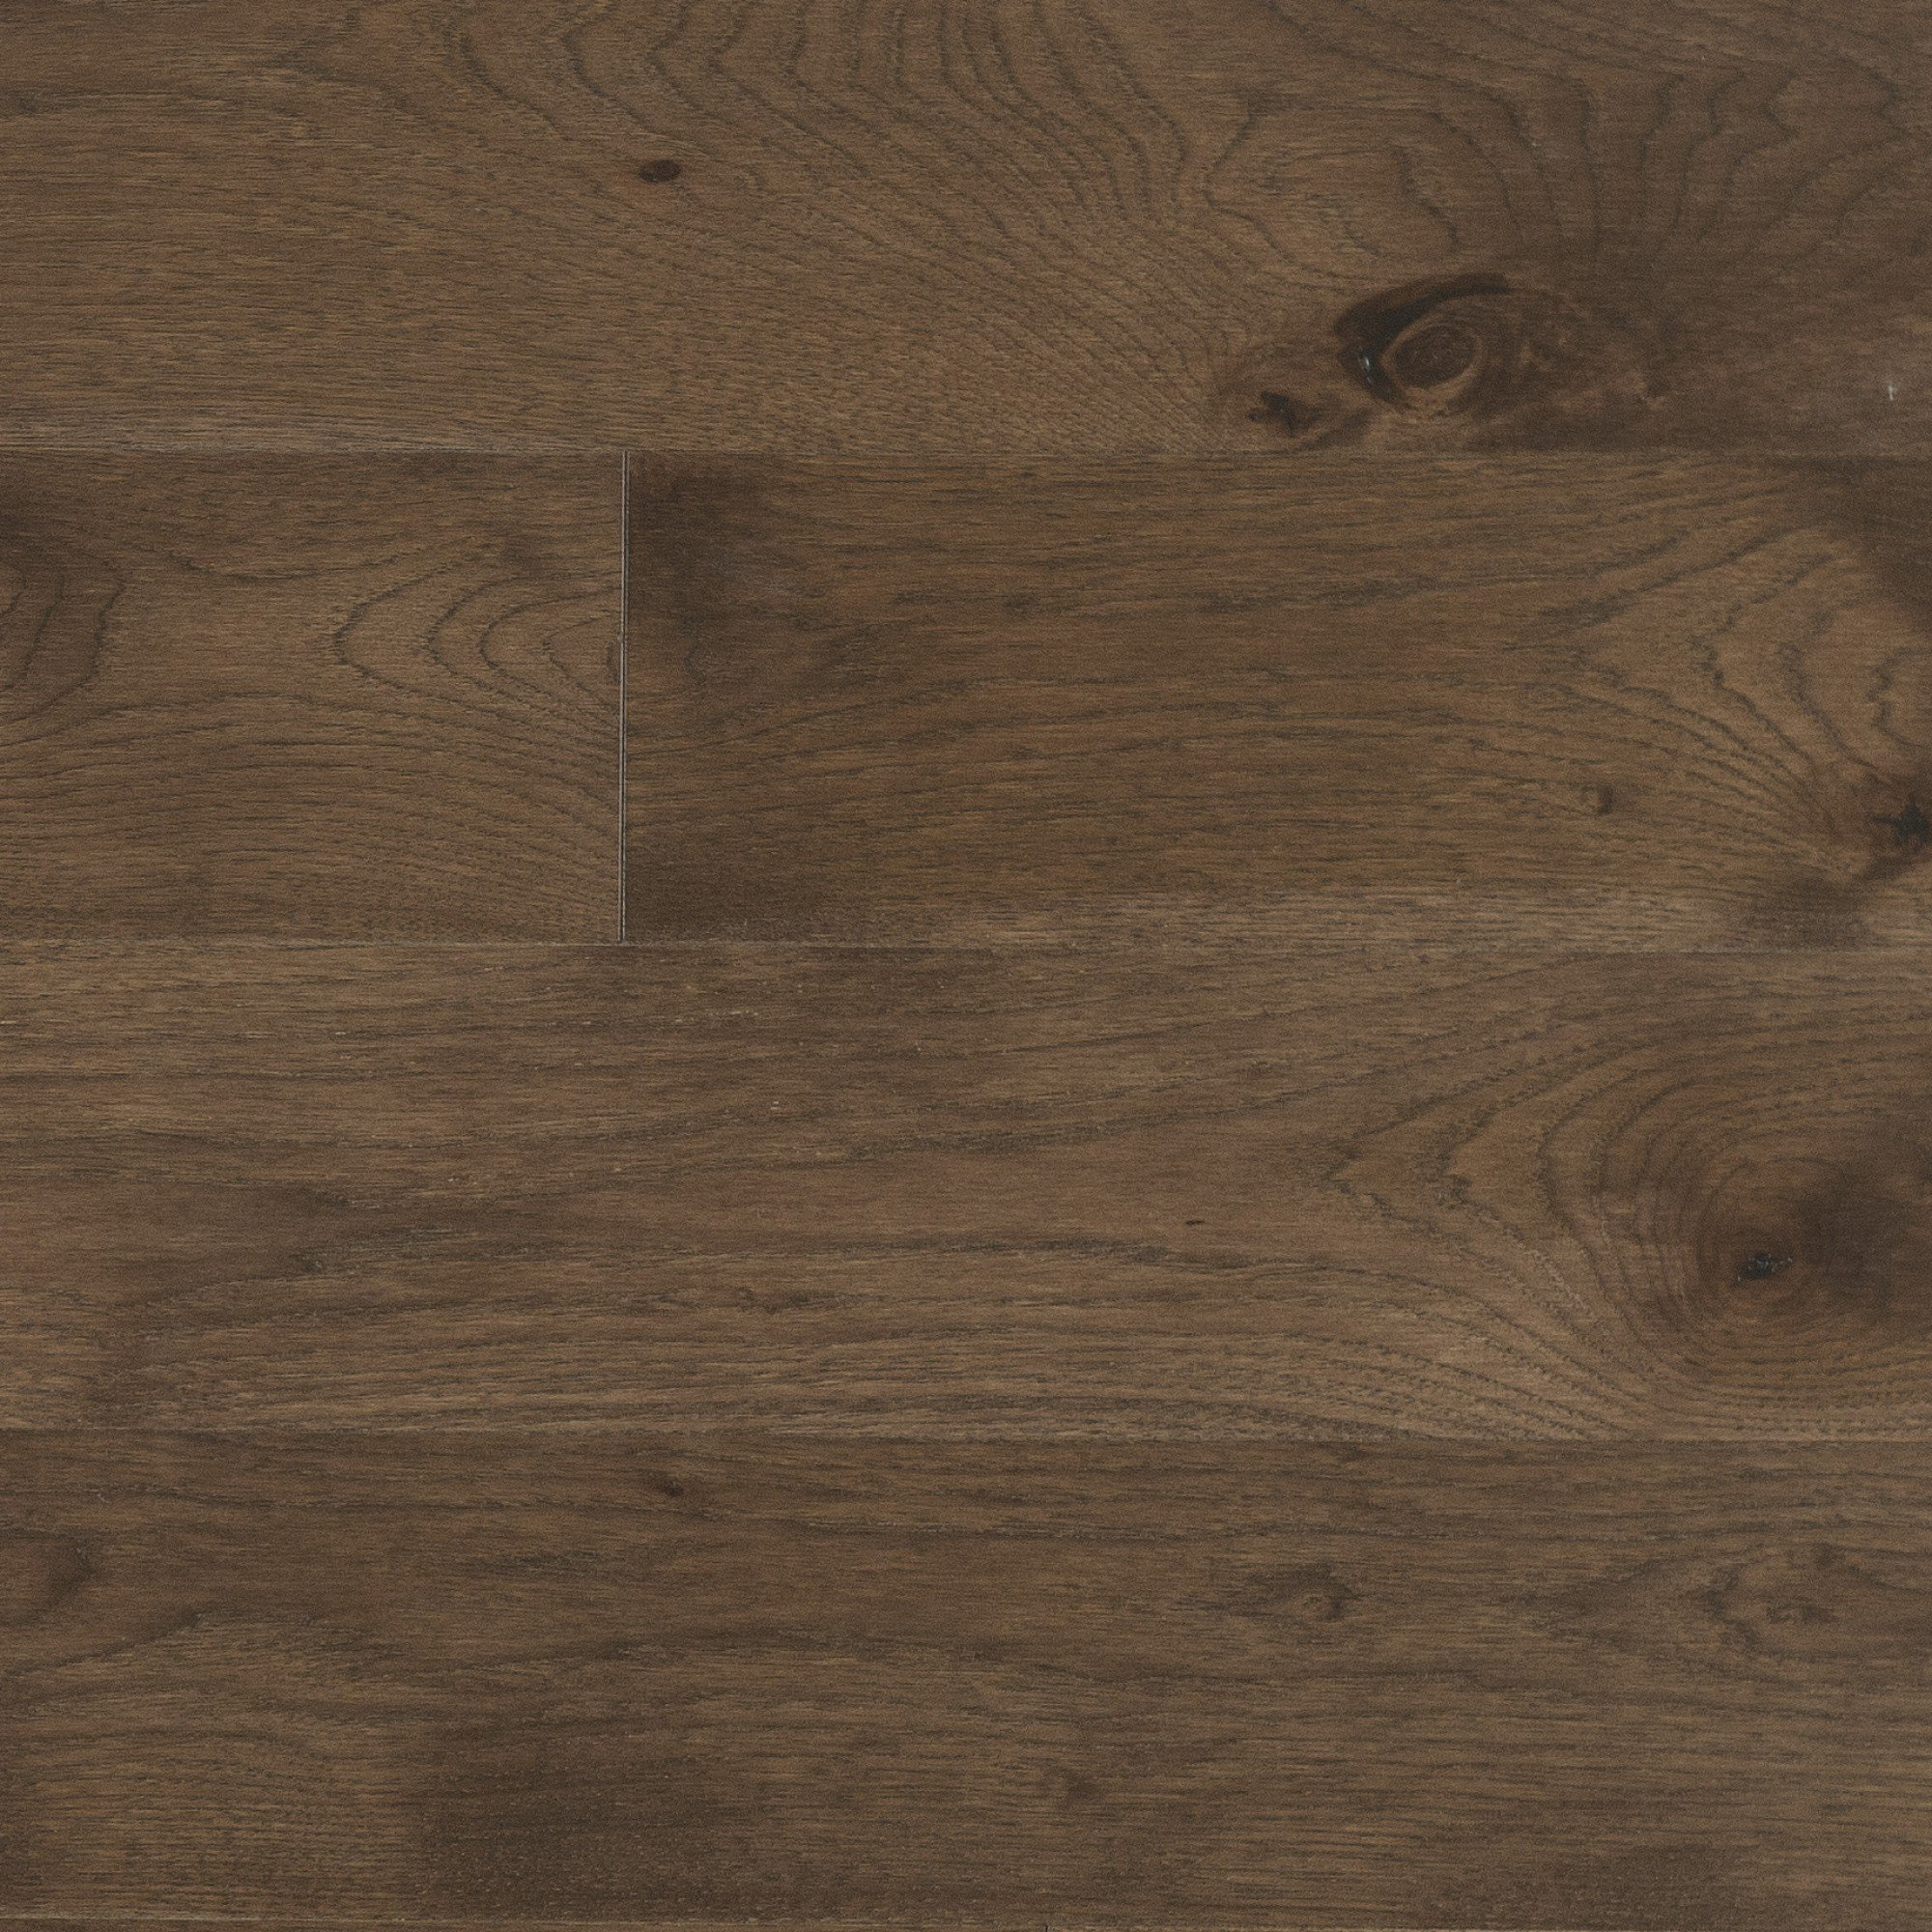 Old Hickory Umbria - Floor image